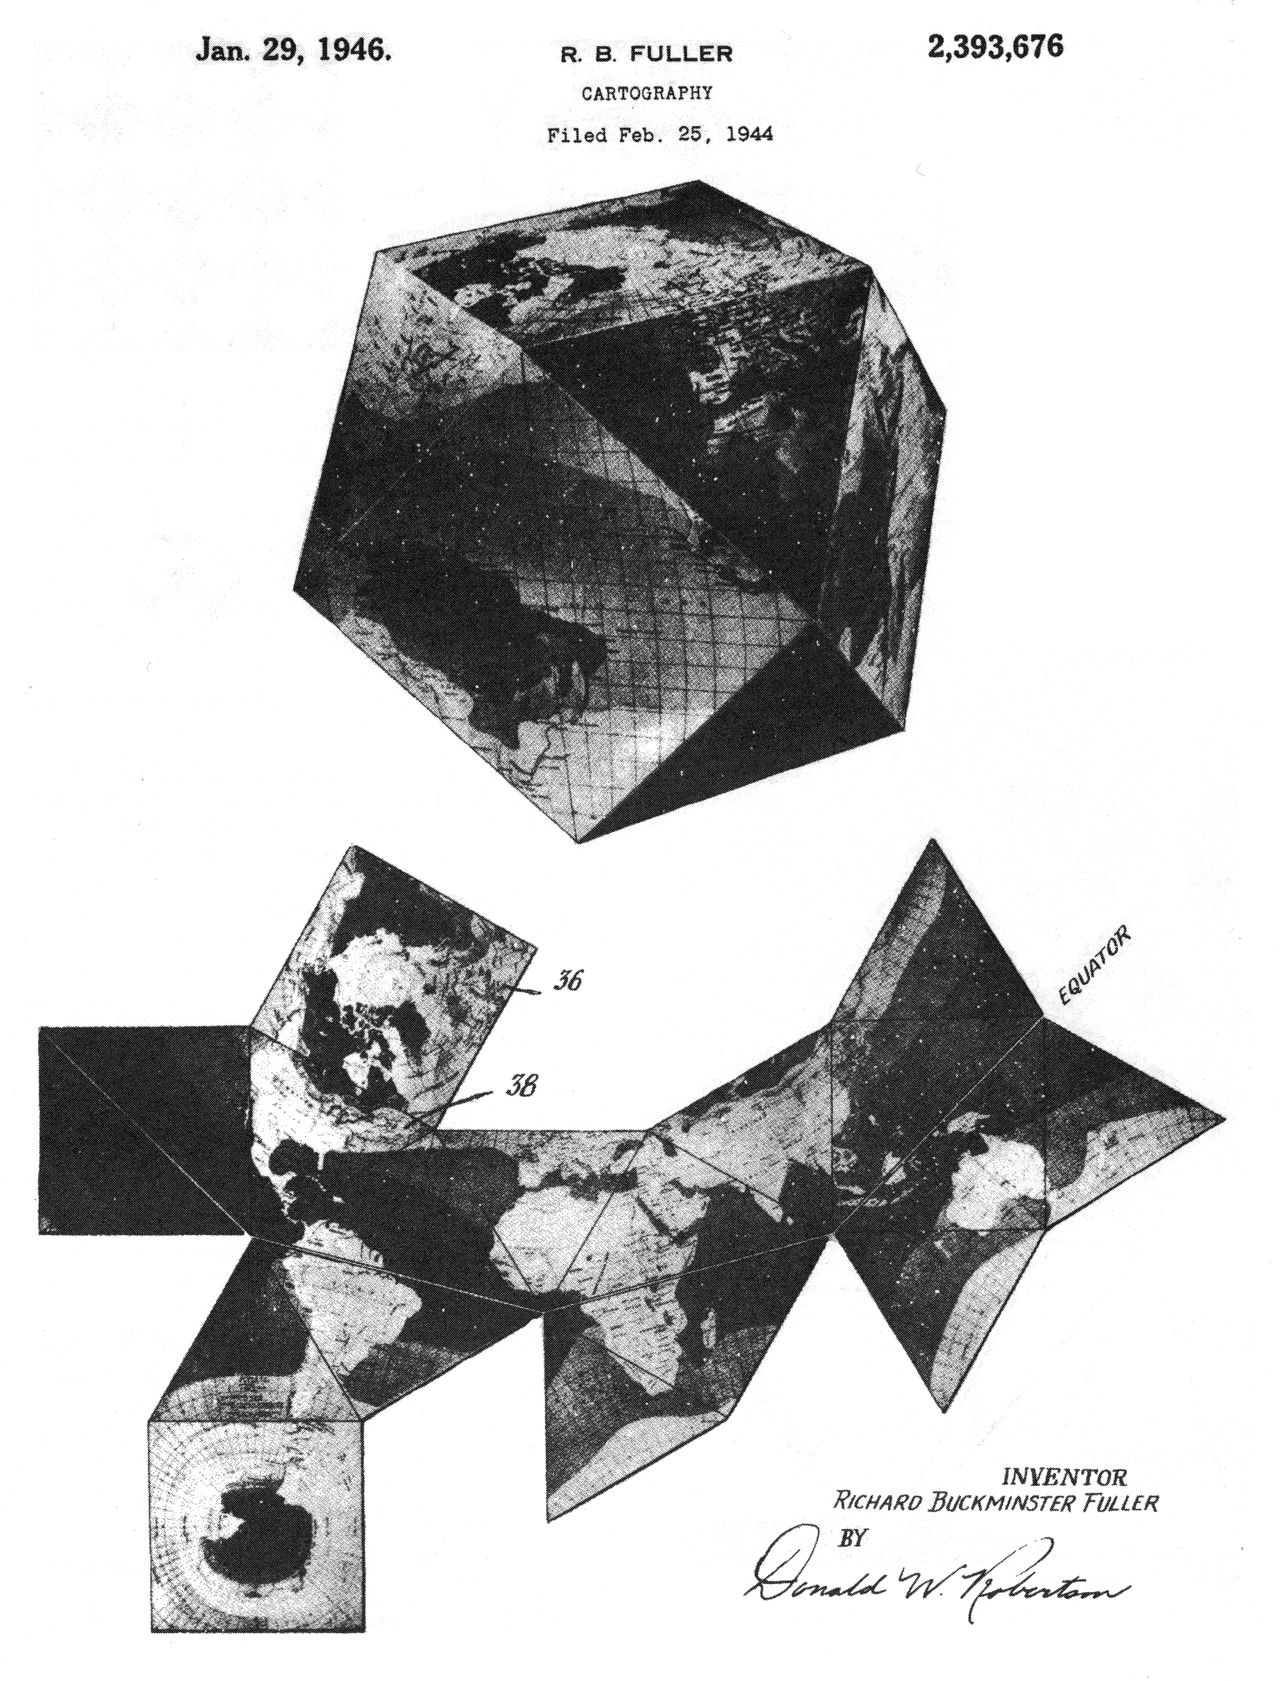 Richard buckminster fuller patent drawing for a world map richard buckminster fuller patent drawing for a world map projection based on the cuboctahedron gumiabroncs Gallery